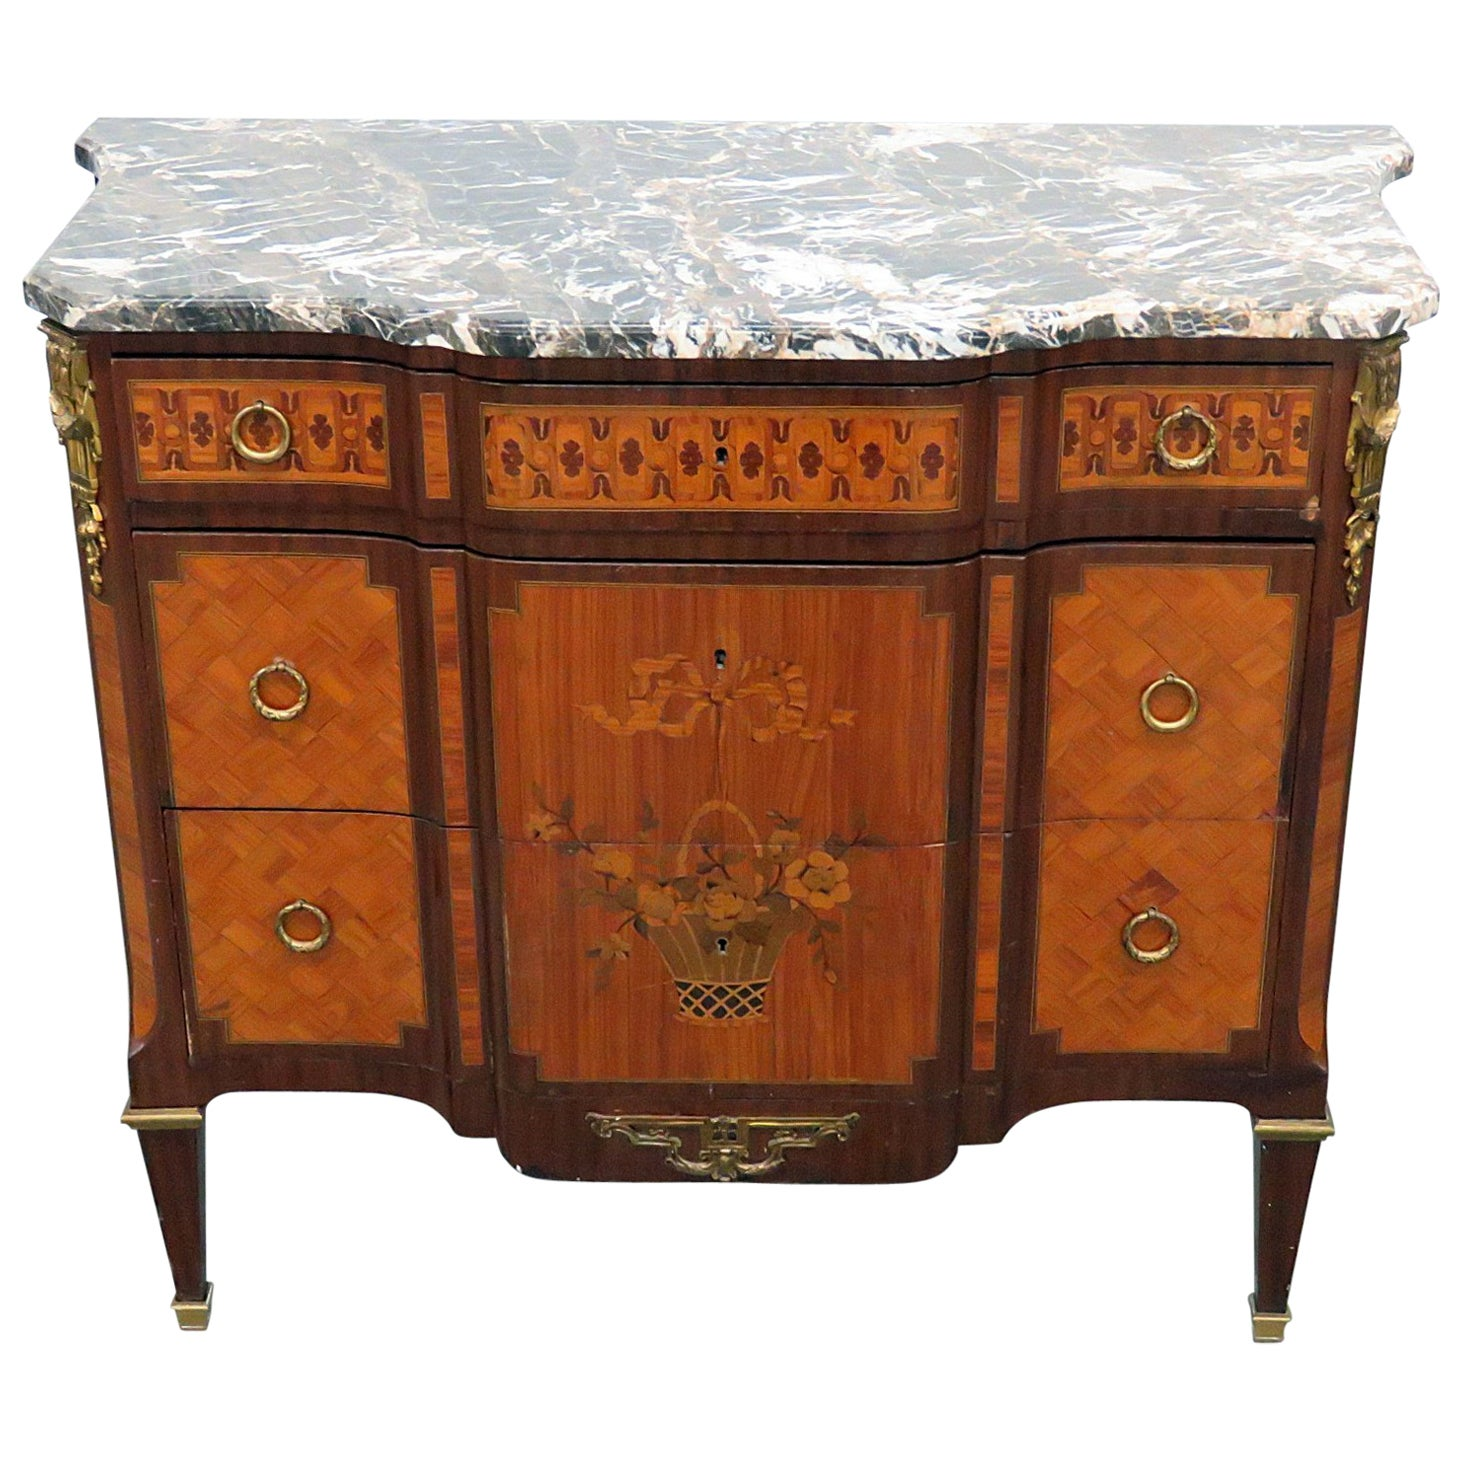 French Inlaid Satinwood Louis XVI Style Inlaid Marble Top Commode